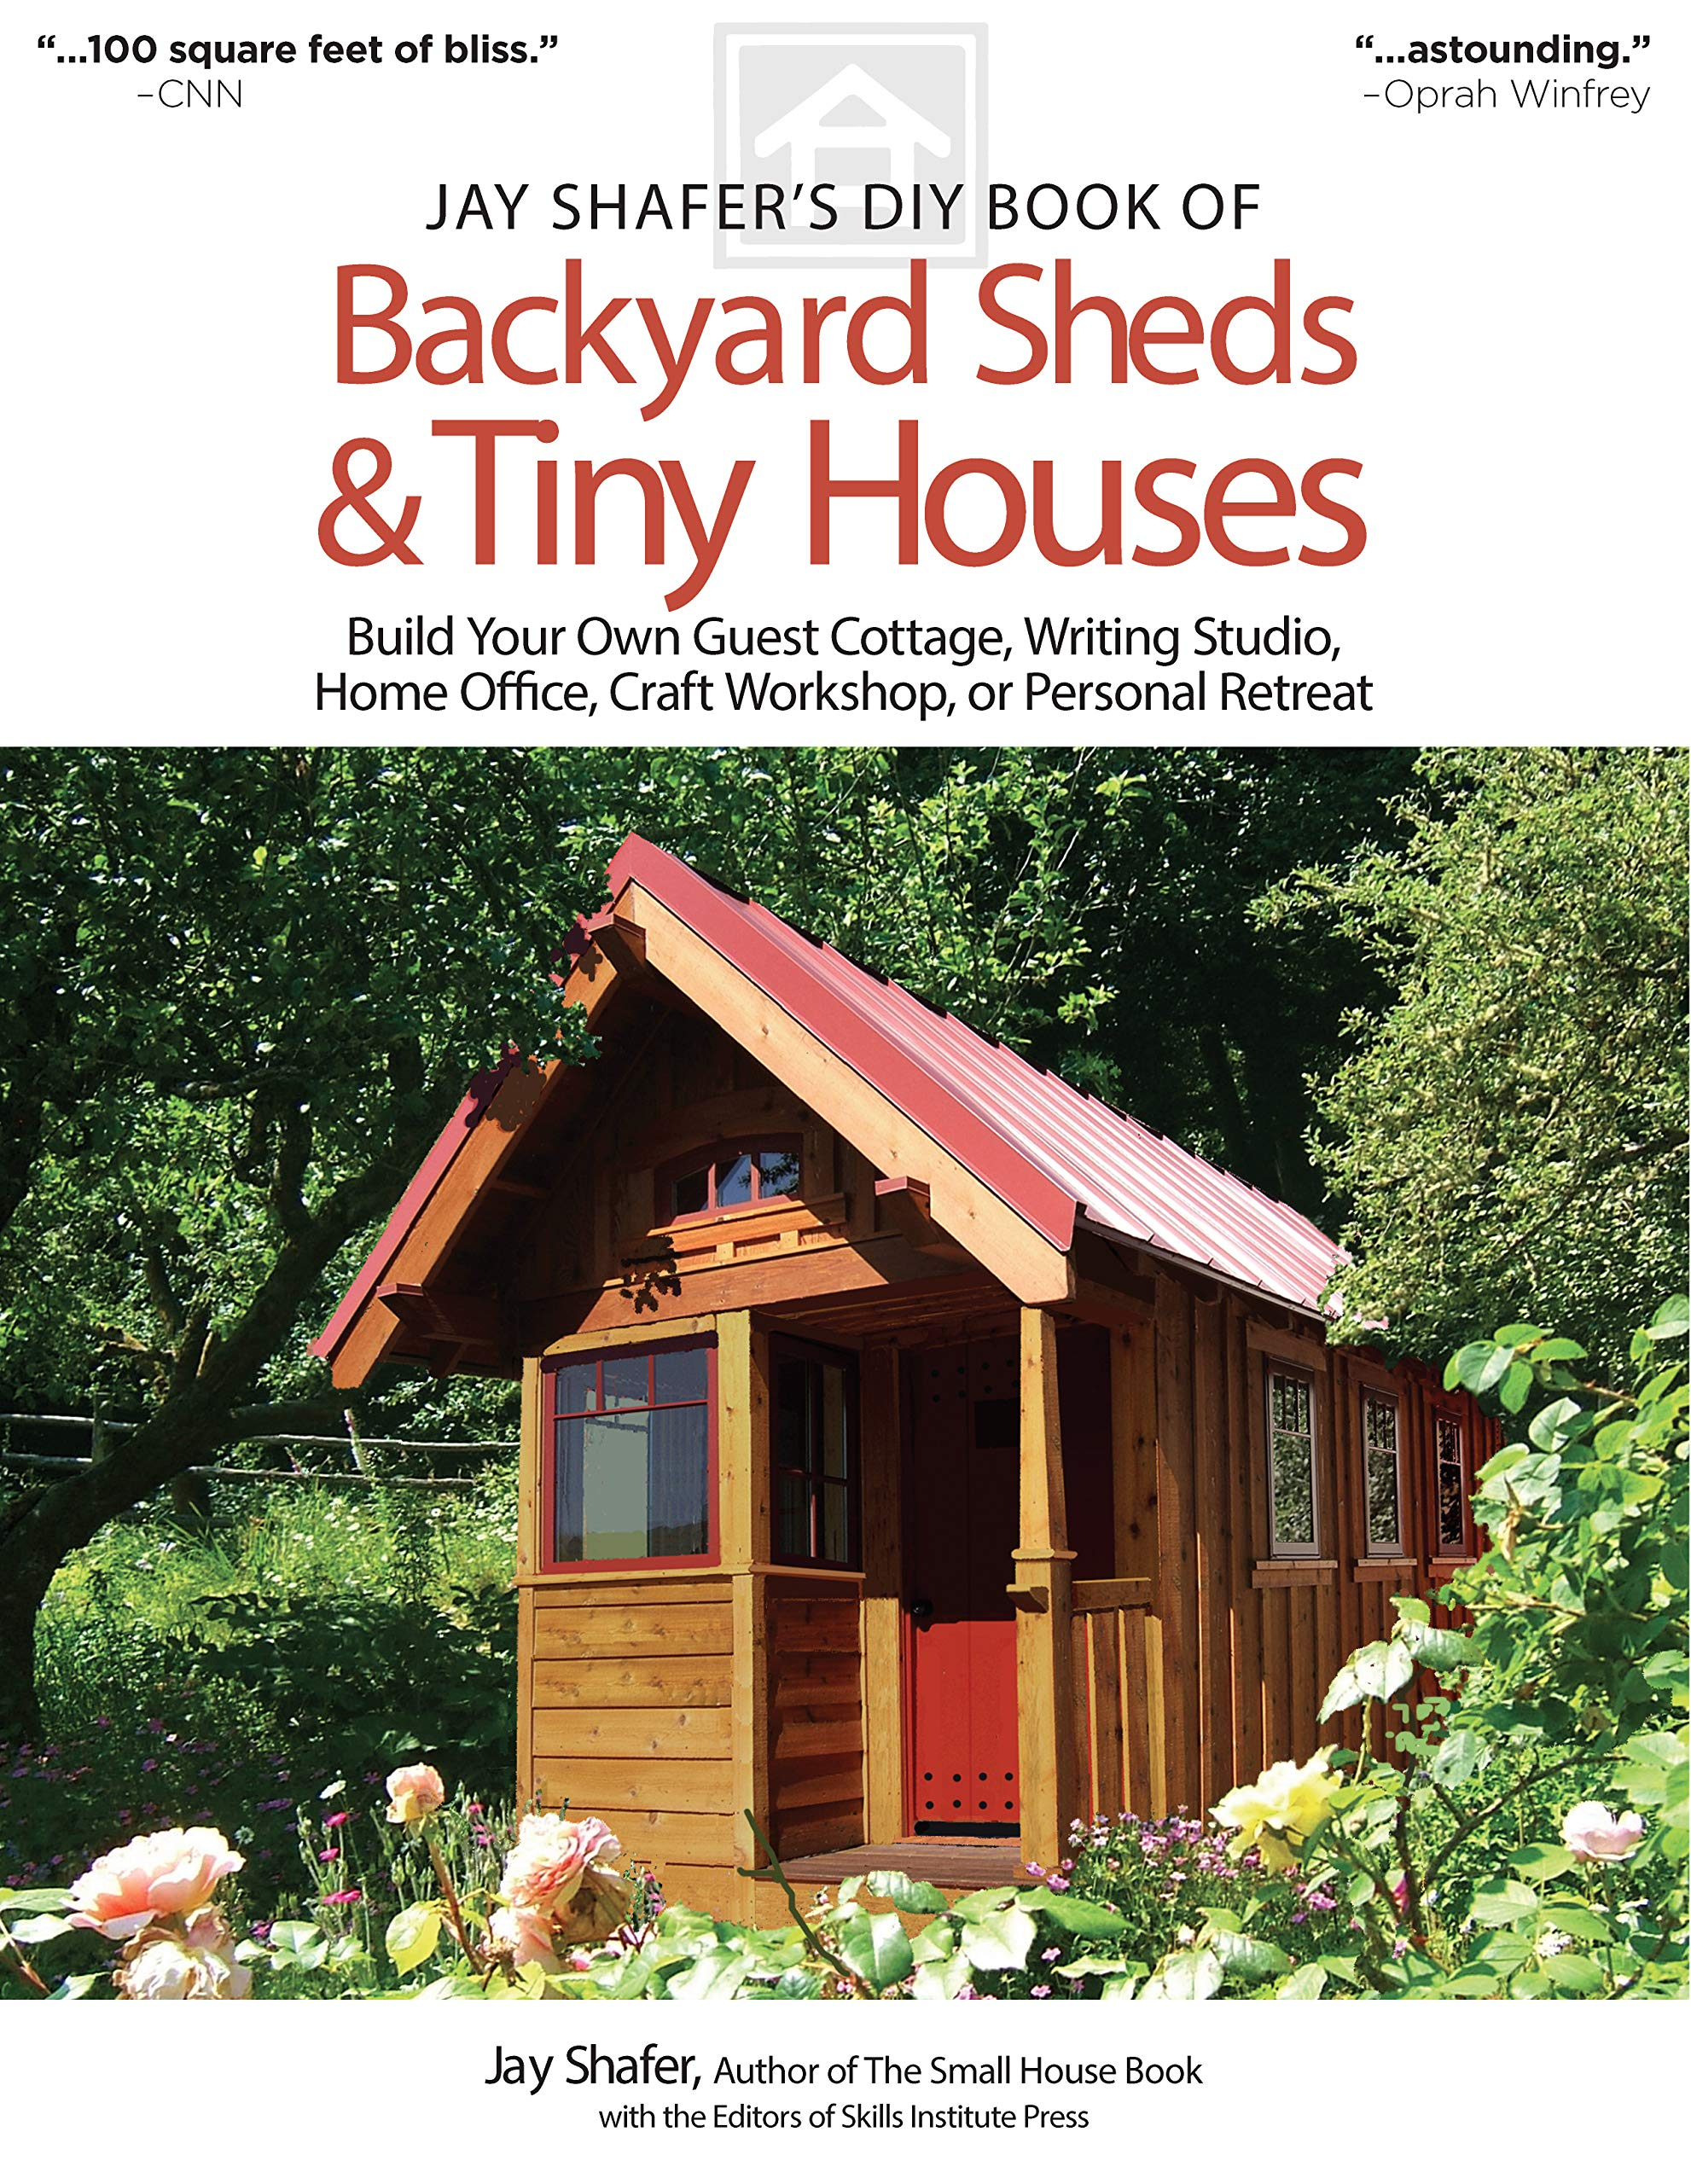 Jay shafers diy book of backyard sheds tiny houses build your own guest cottage writing studio home office craft workshop or personal retreat jay